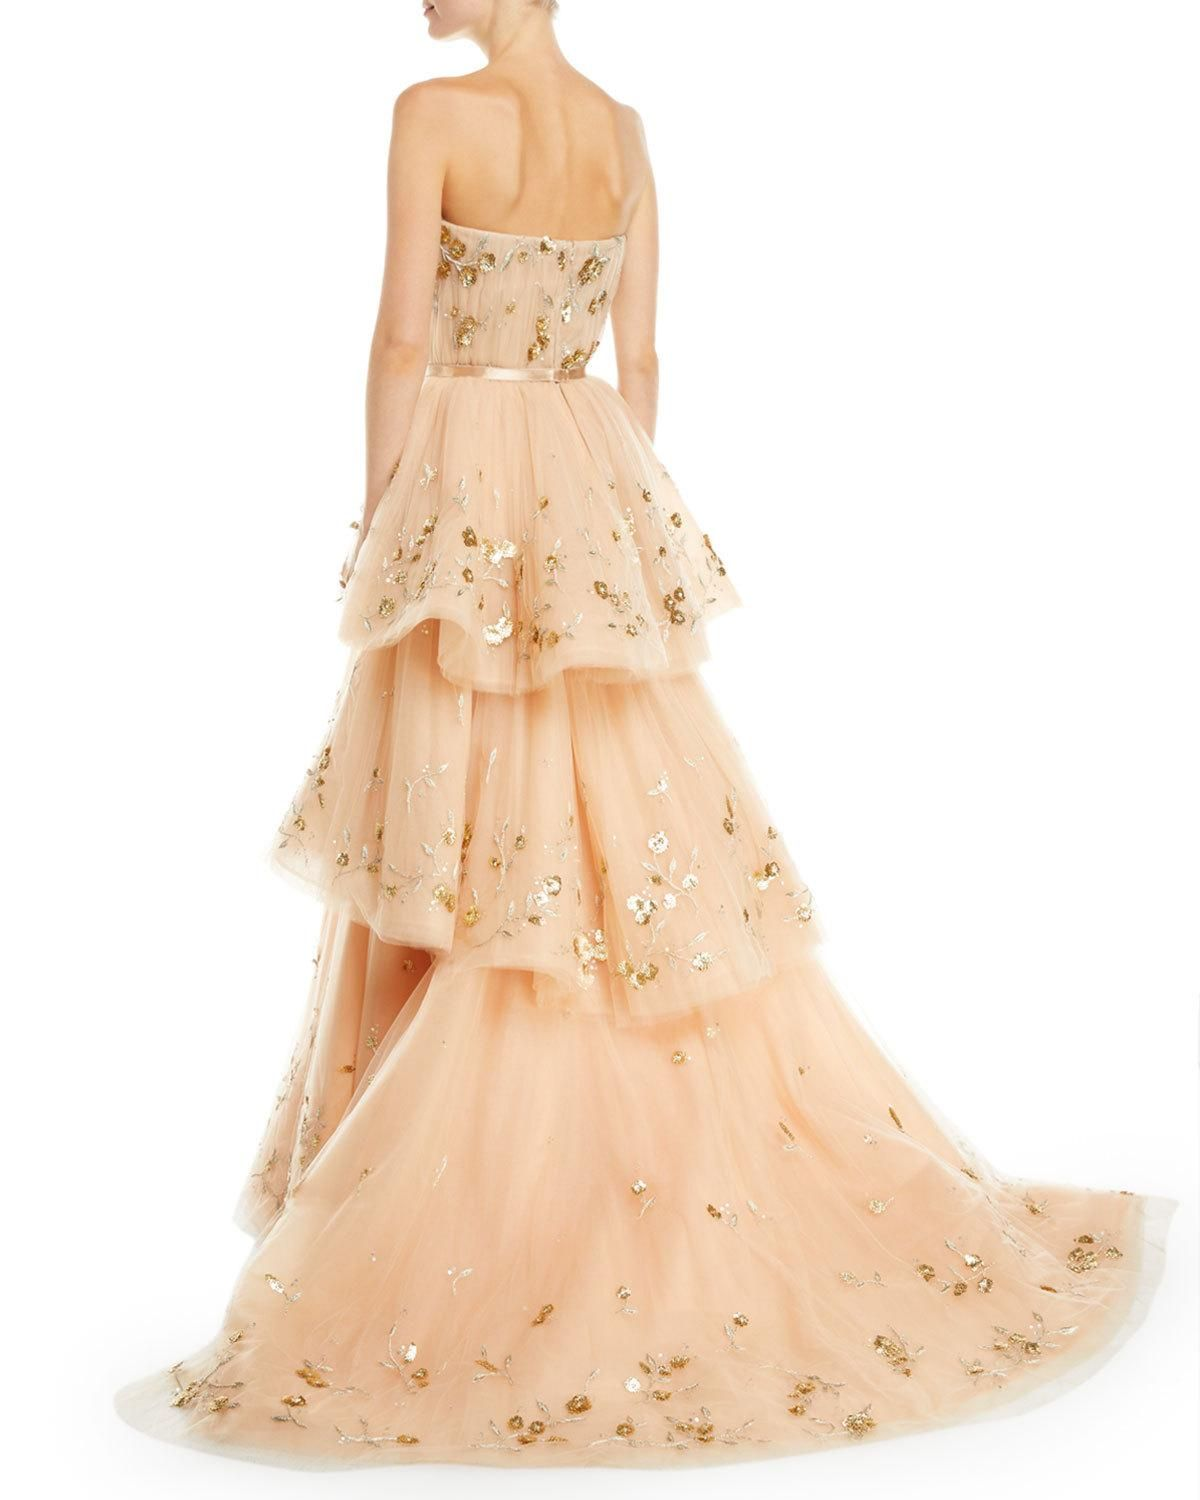 Carolina Herrera Strapless Floral Embroidered Three Tiered Tulle Ballgown Ball Gowns Long Tiered Dress Tiered Dress Formal [ 1500 x 1200 Pixel ]